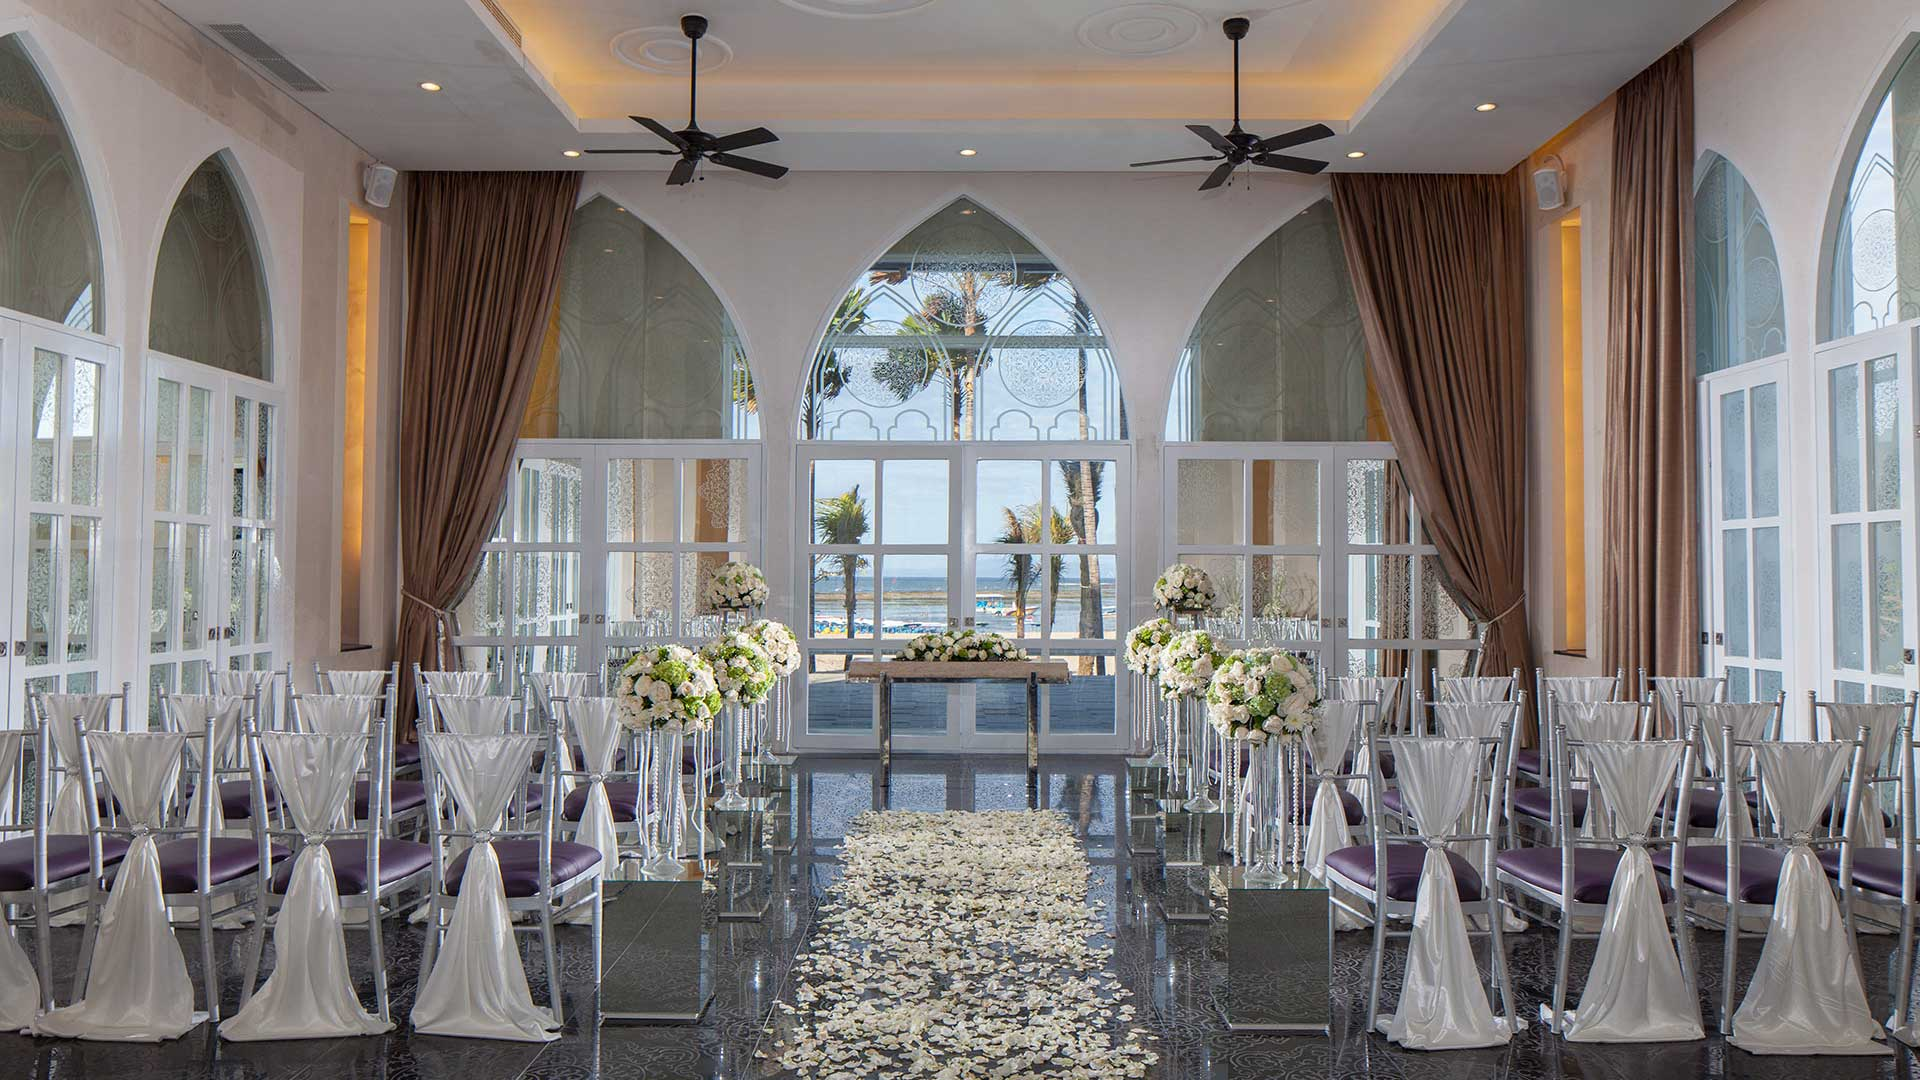 Bali wedding chapel in Tanjung Benoa - Nusa Dua | The Sakala Resort Bali